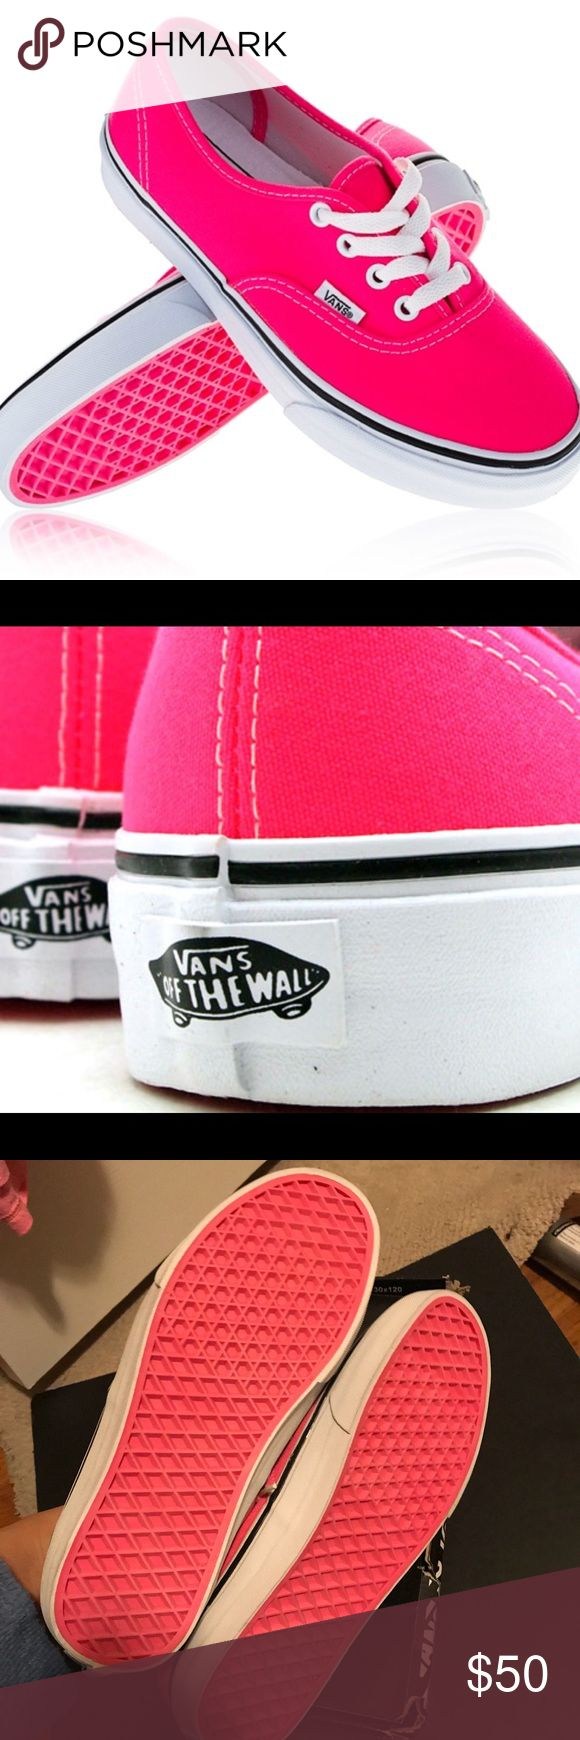 Sale!!Women sz 10 classic neon pink/white vans New with original box. Vans® Authentic™ shoe! Colored in neon pink/white.  Size women 10. Size men 8.5.   **Broken box ** Die-cut EVA insert for comfort. Vulcanized construction: • Slimmed-down profile offers a flexible feel. • Gum rubber outsole with signature waffle tread provides superior grip.  Retail :$65.00 Vans Shoes Athletic Shoes